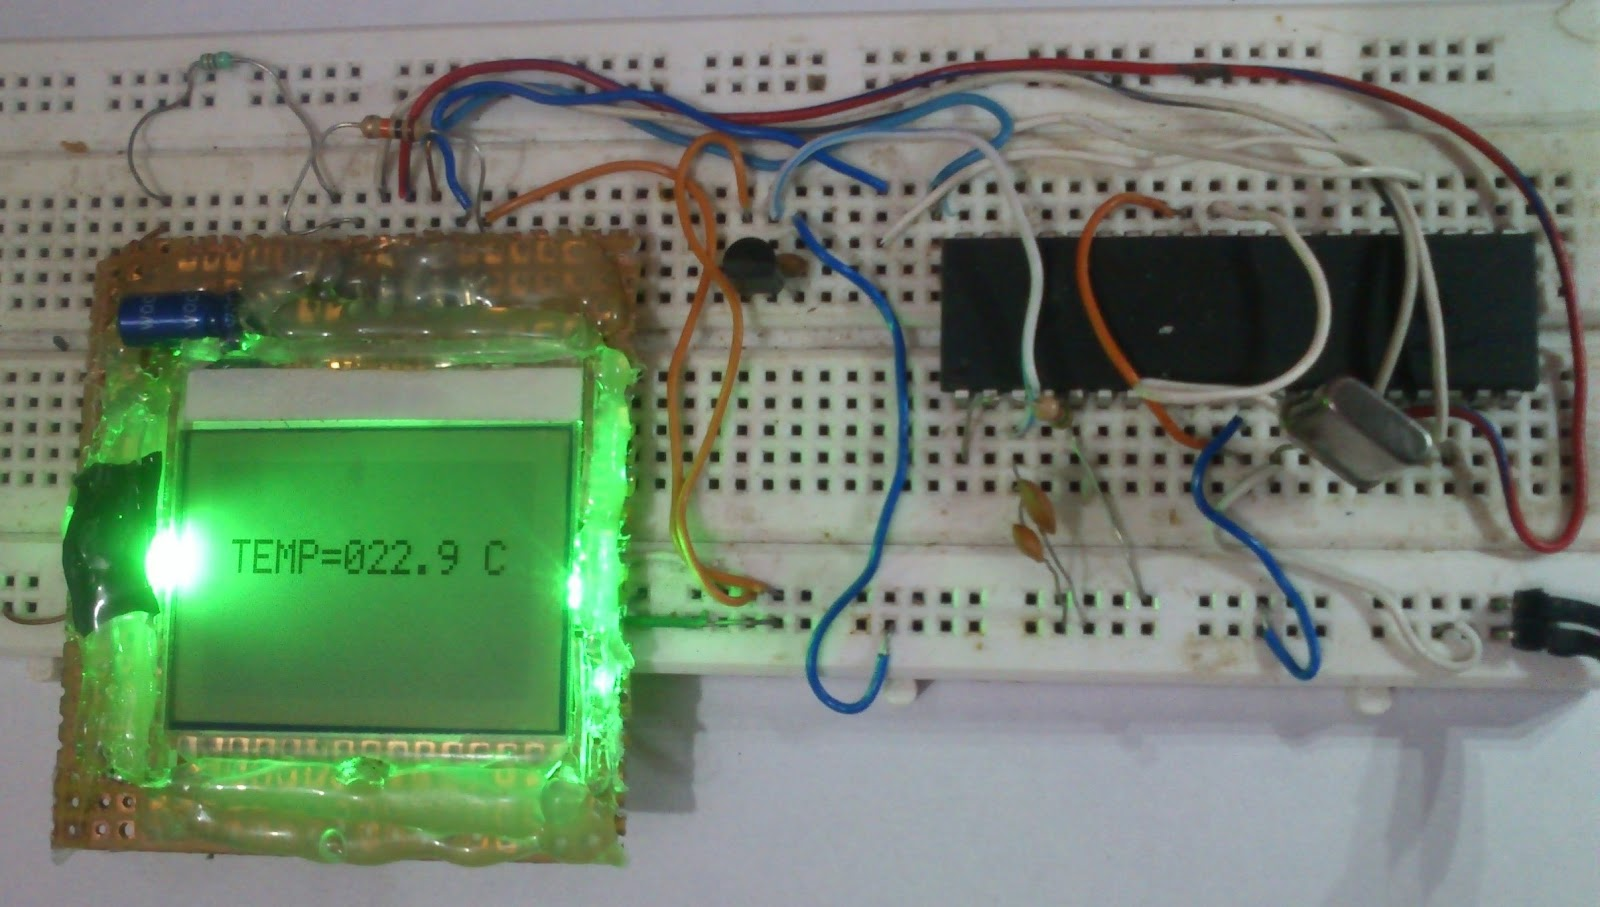 Embedded Engineering Nokia 3315 3310 Lcd Interfacing With Pic16f84 Circuit For The Software Program Is Written In C Help Of Mplab And Microchip C18 Compiler